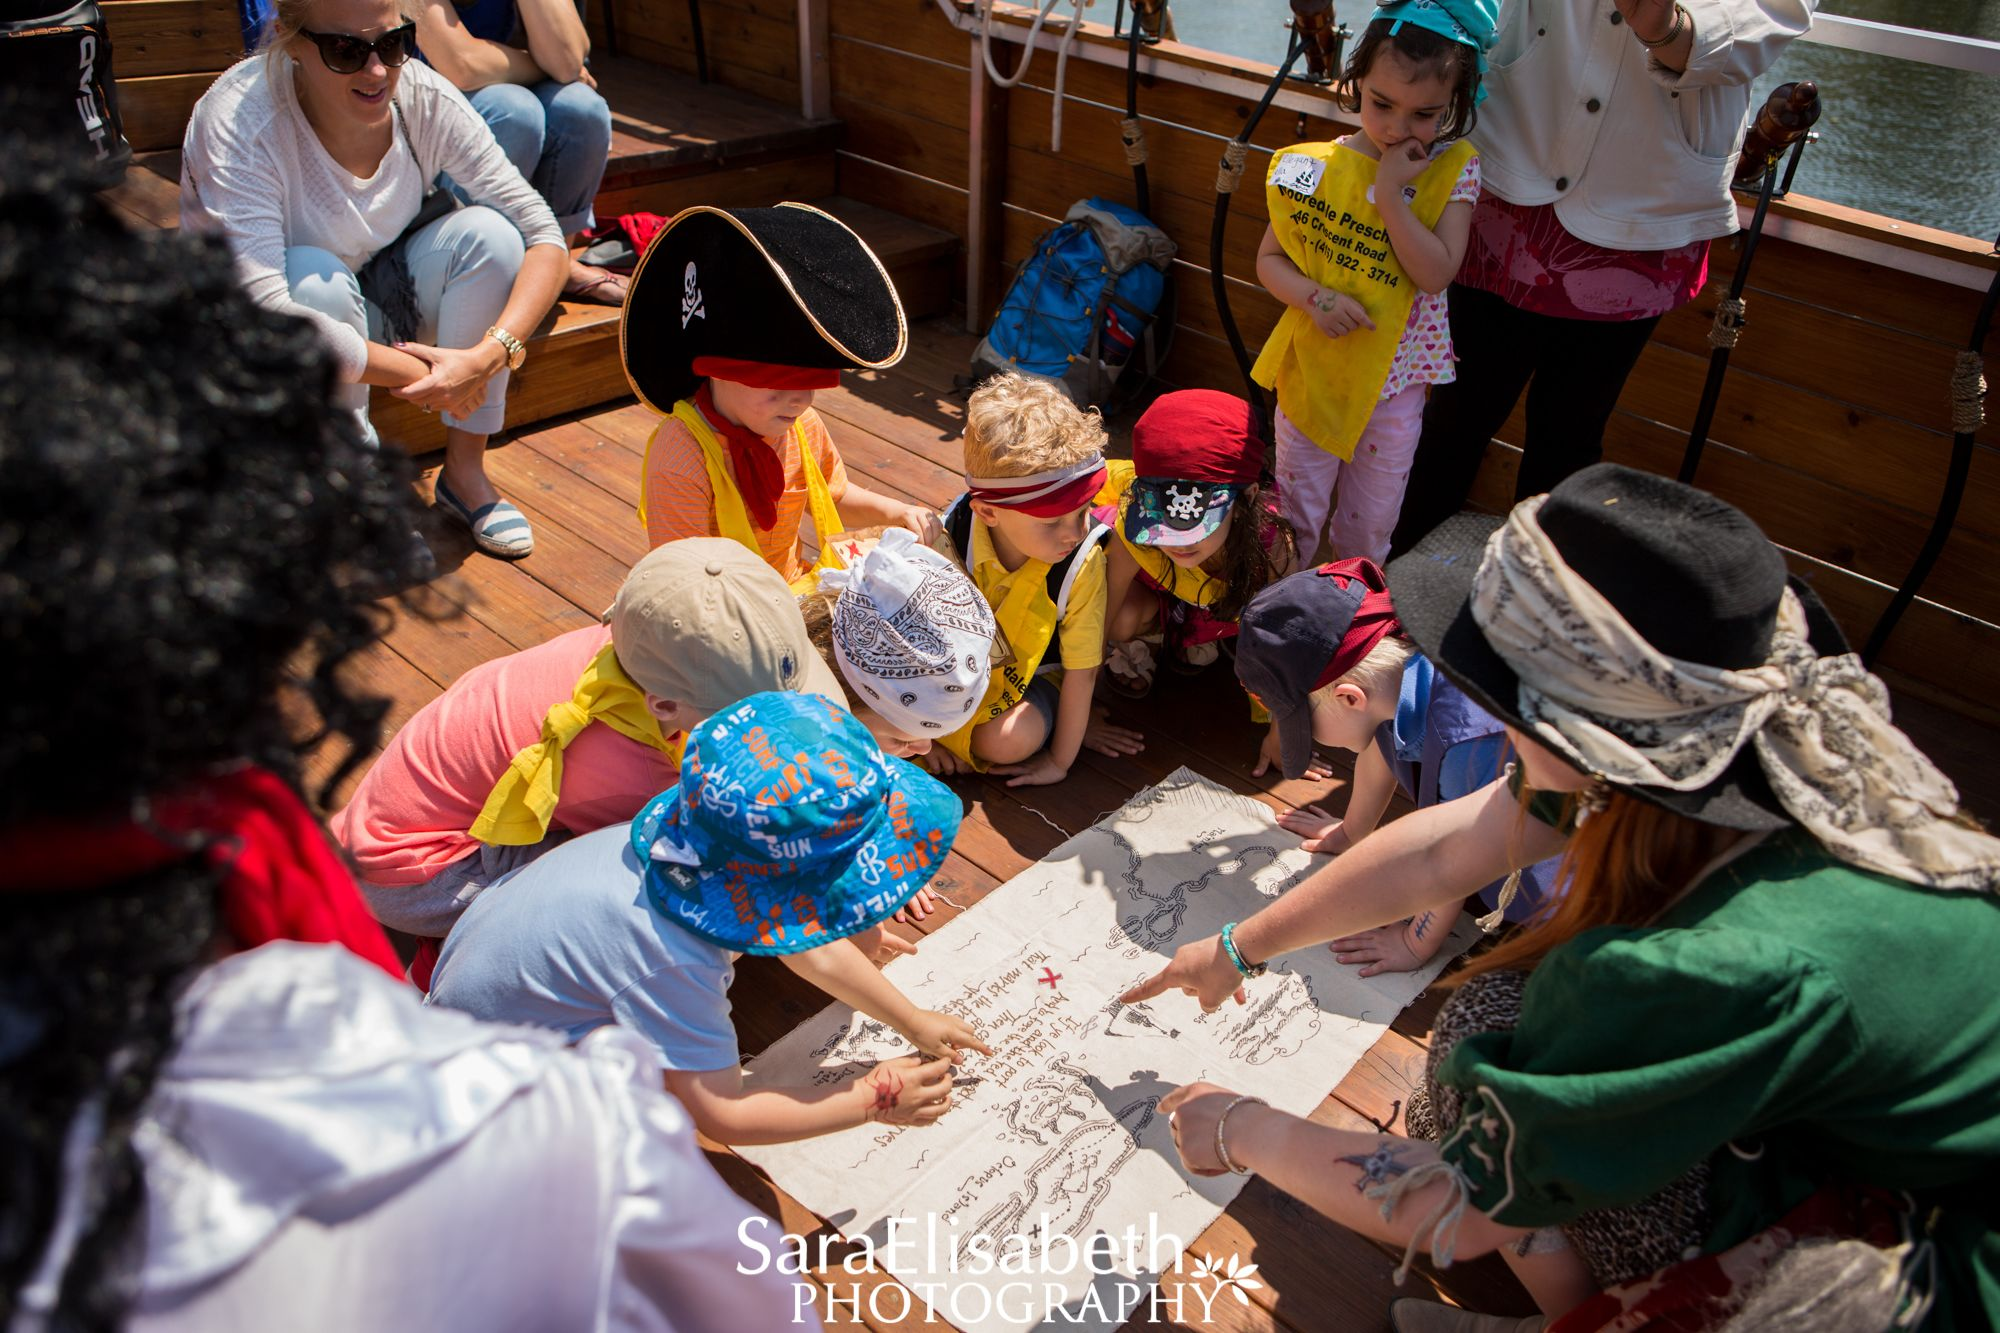 Kids looking at a map together at the Pirate Life Adventure Theatre in Toronto, Canada